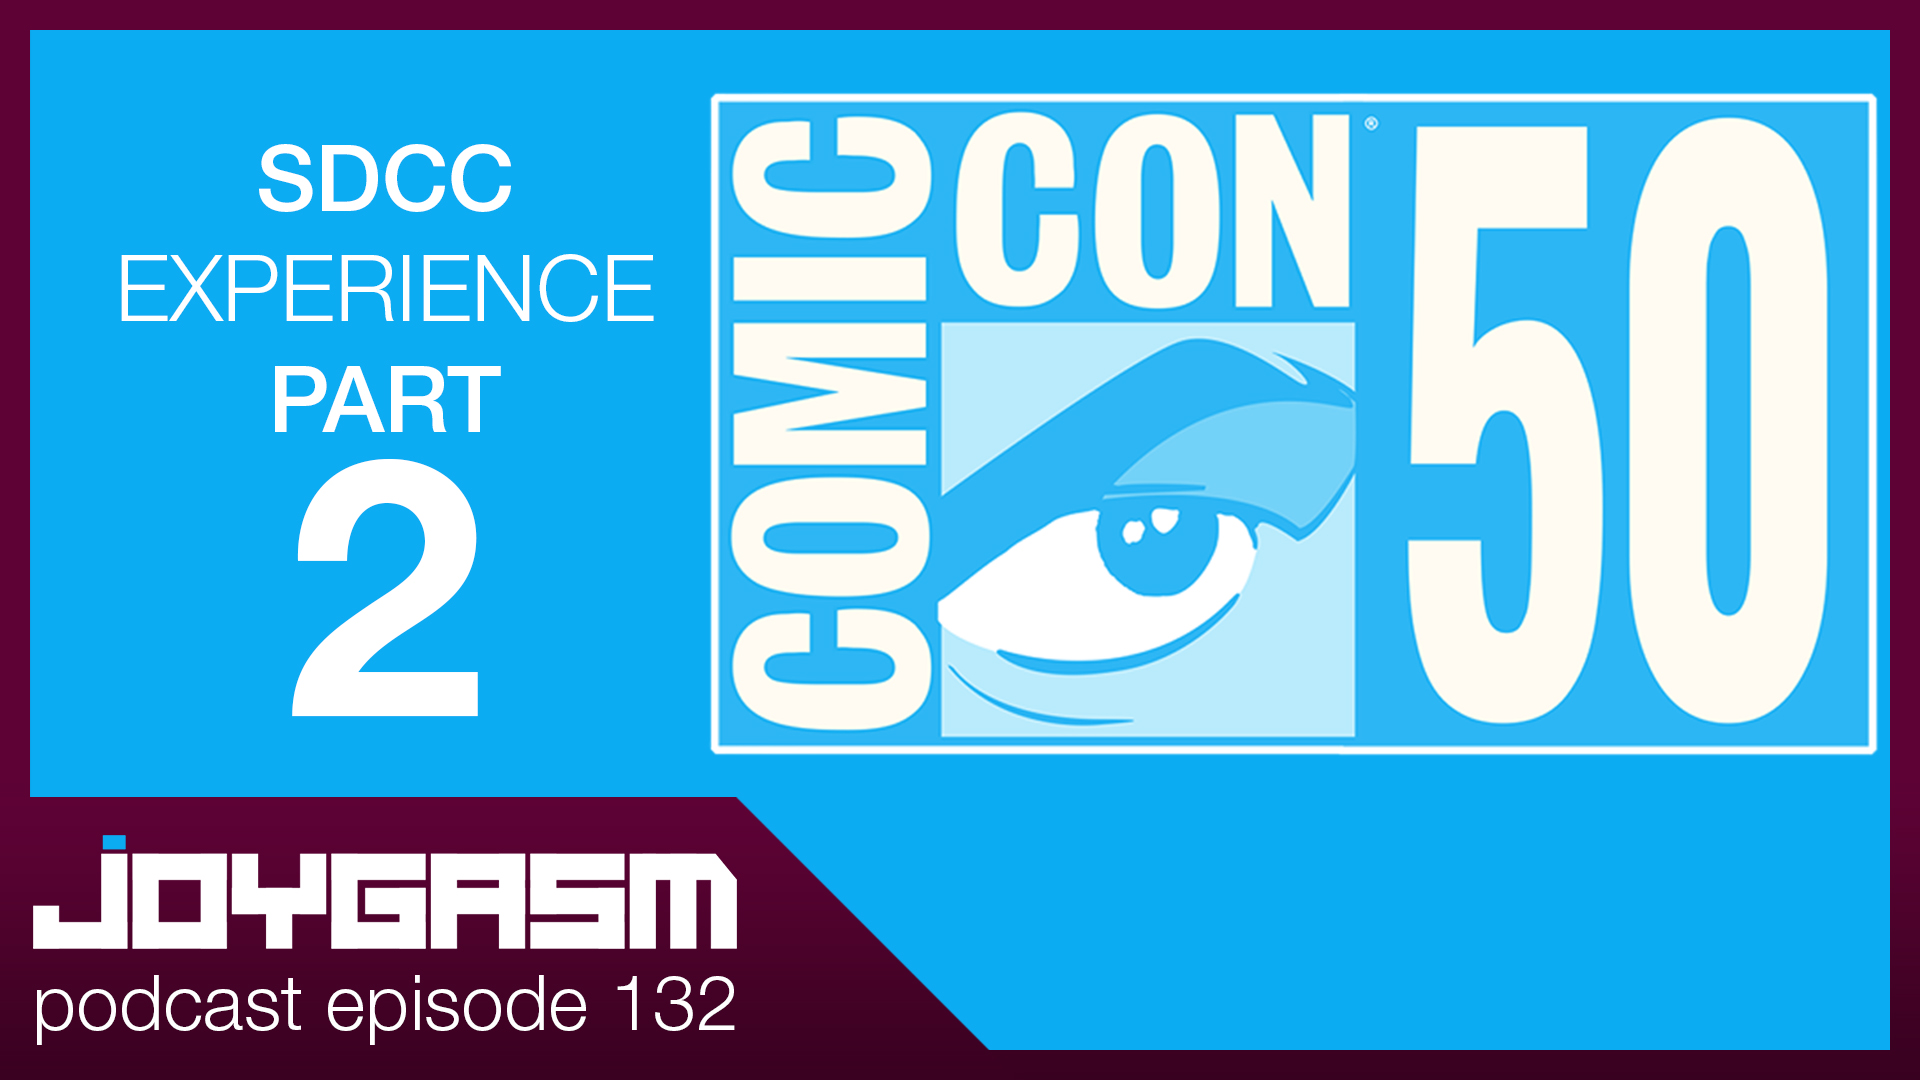 Ep. 132: 2019 San Diego Comic Con Experience Part 2 of 2